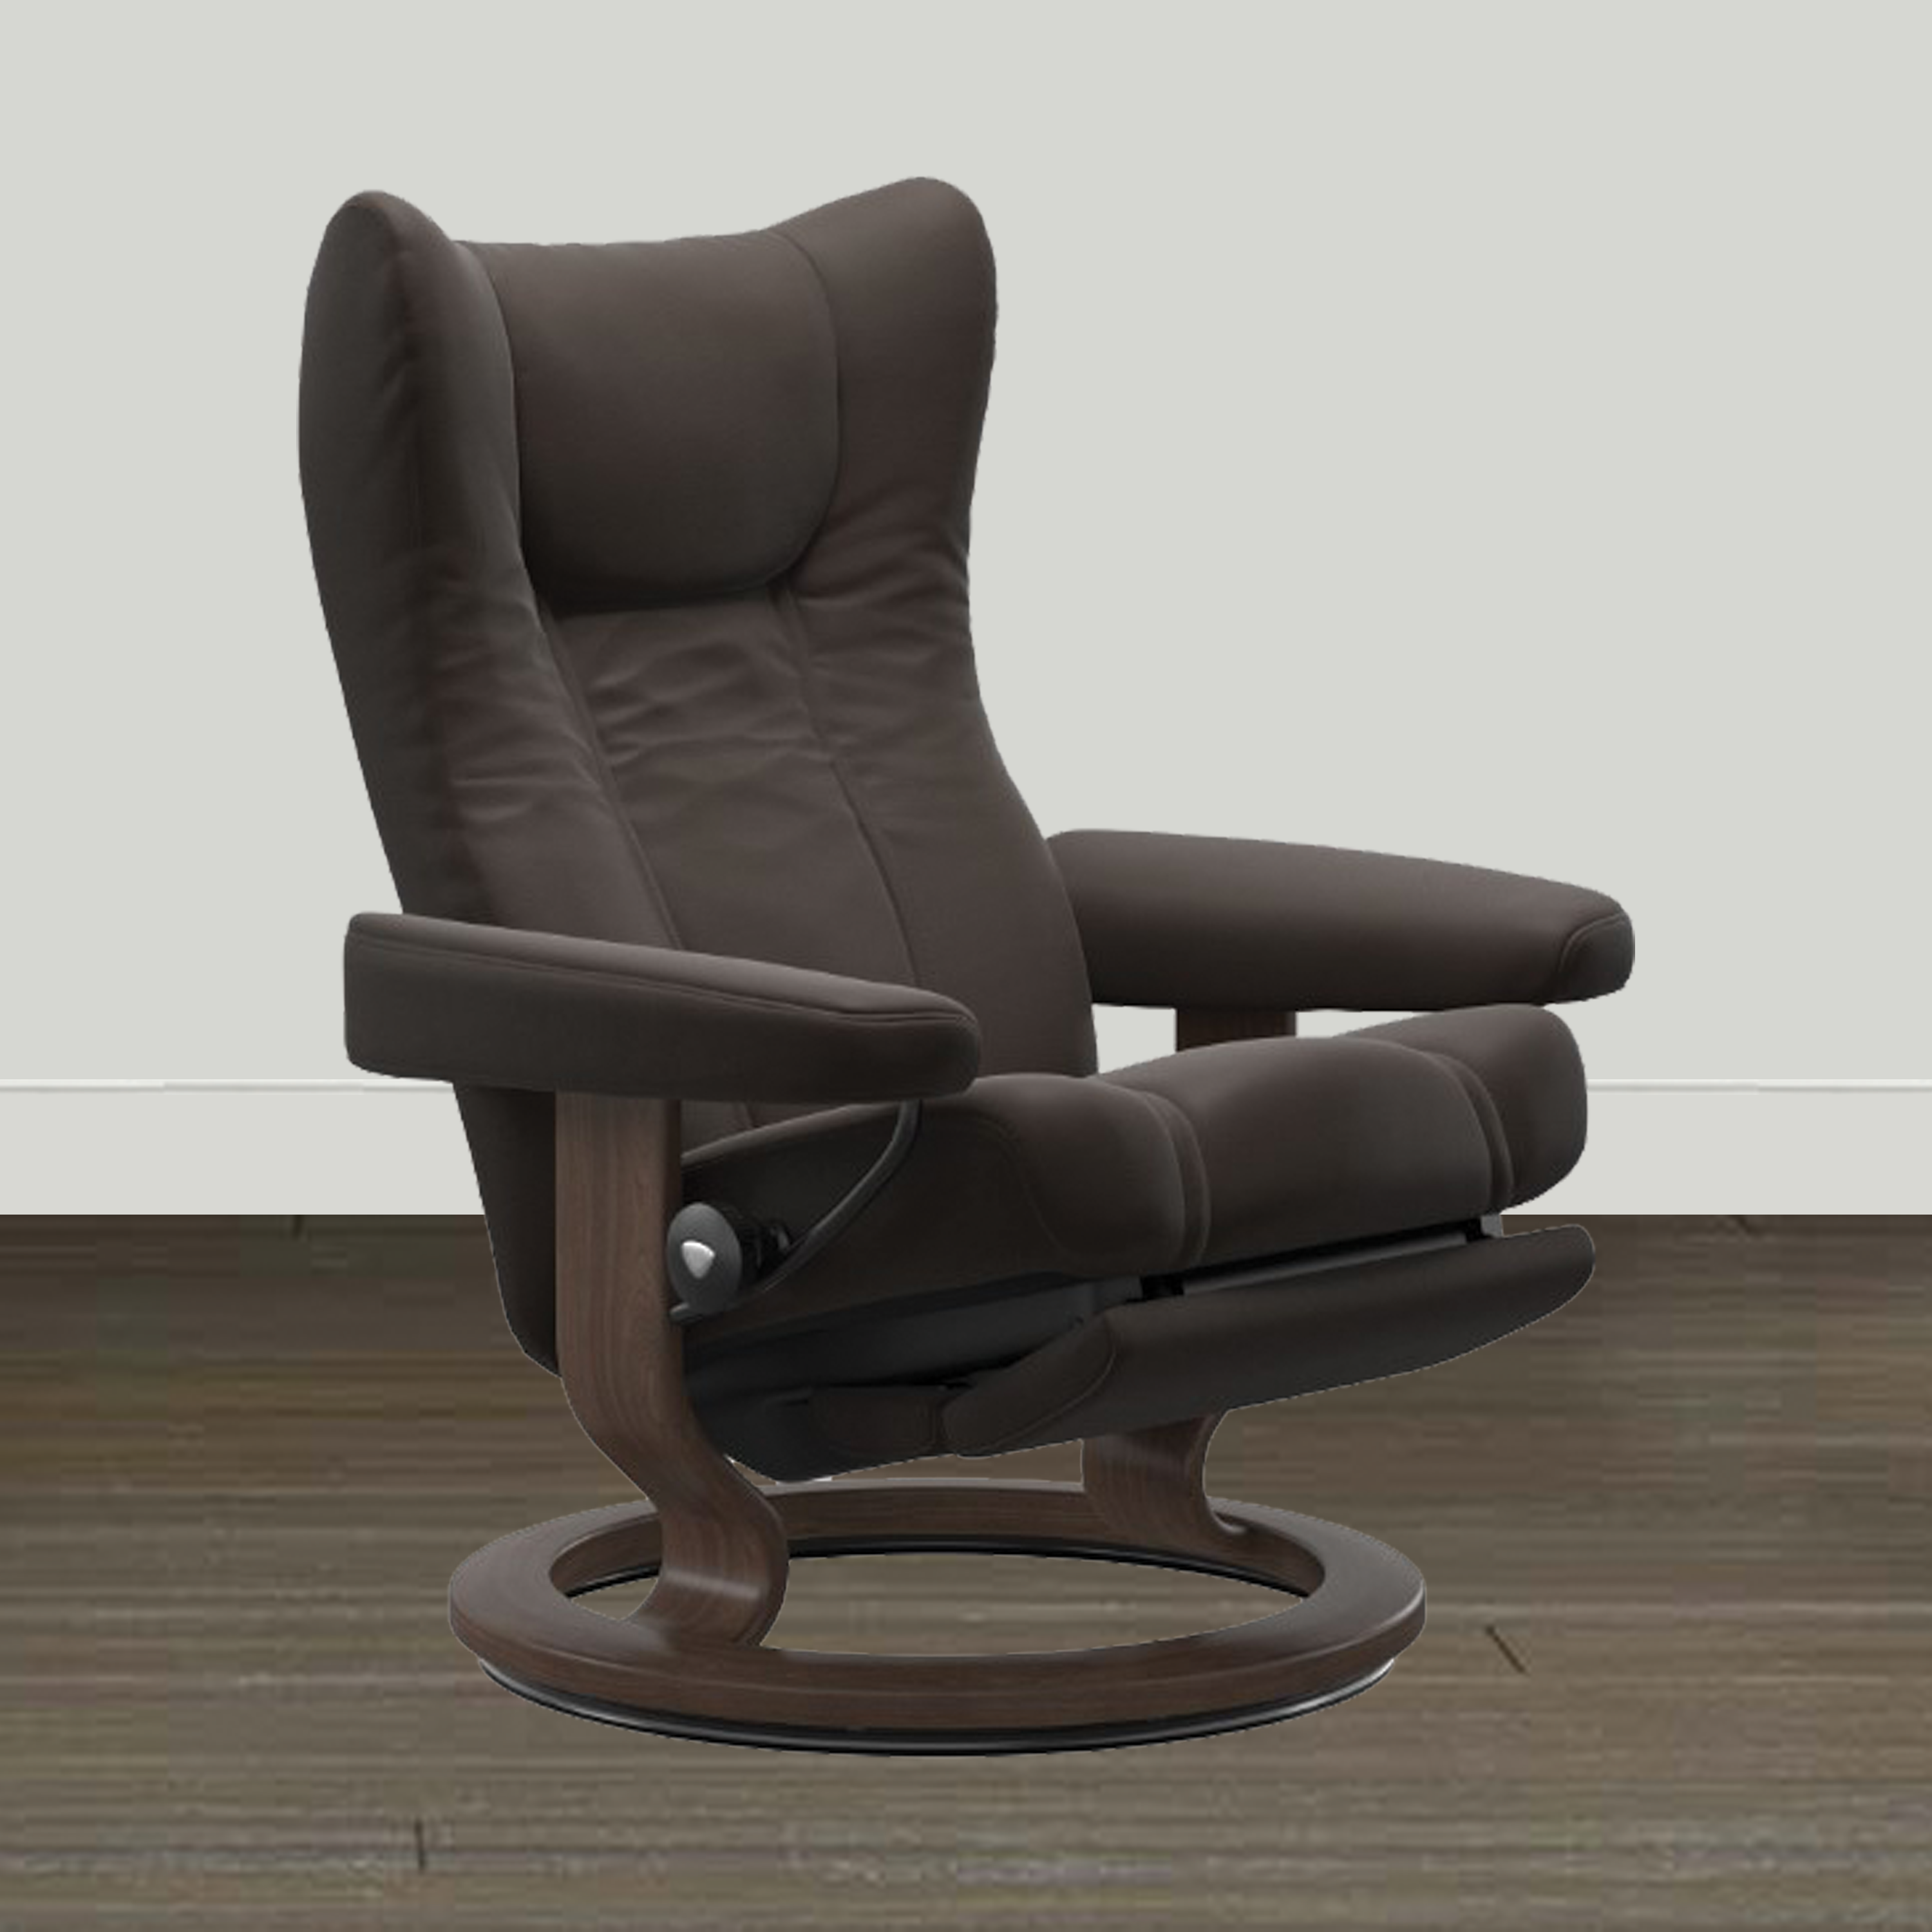 Ekornes Leather Recliner and Ottoman Ekornes Stressless Wing LegComfort Recliner and Ottoman